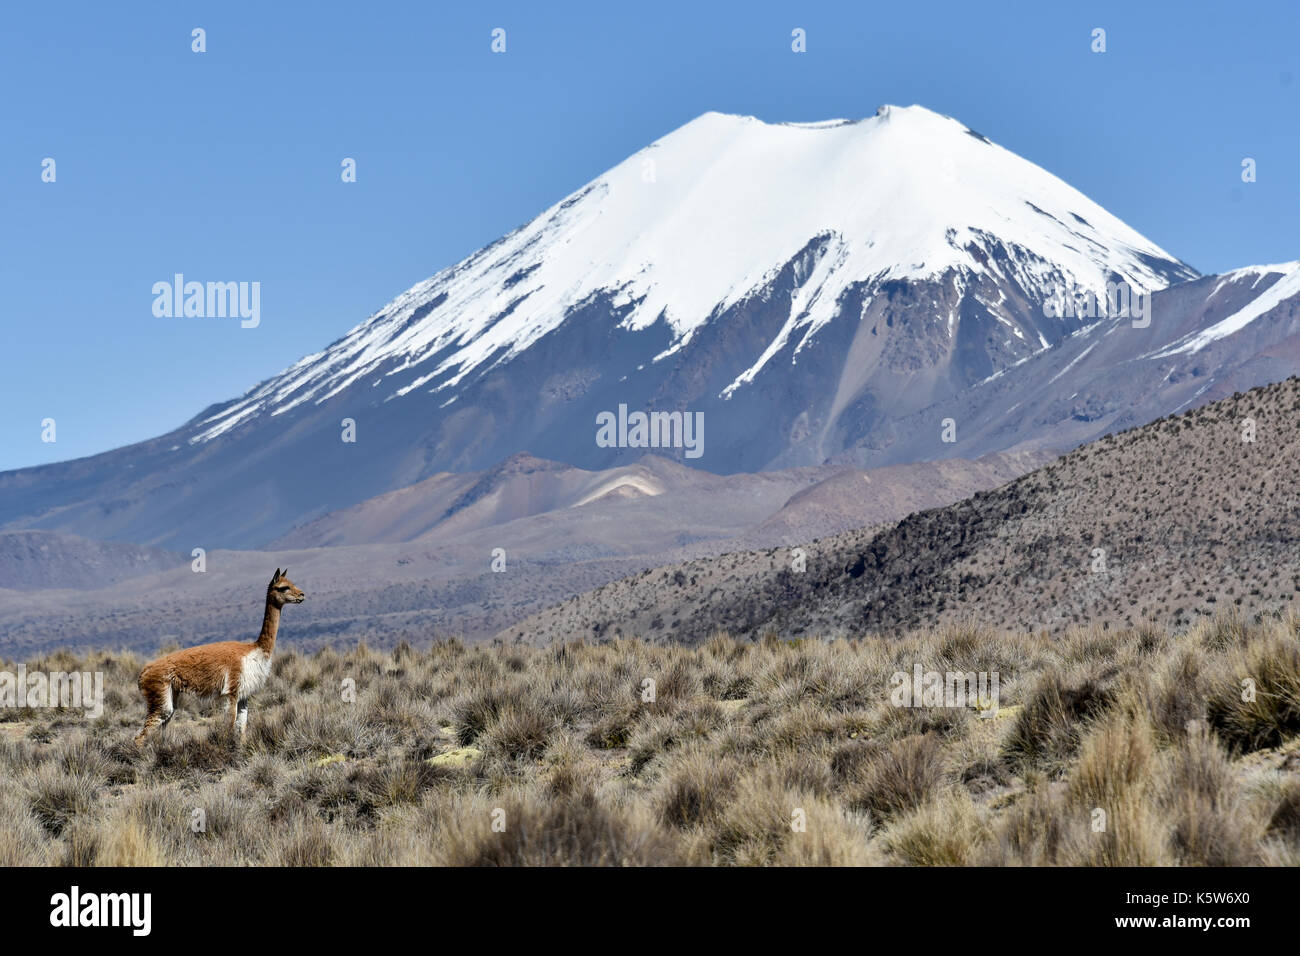 Snow covered volcanoes Pomerape and Parinacota with Guanaco (Lama guanicoe), Sajama National Park, Bolivian Bolivia - Stock Image